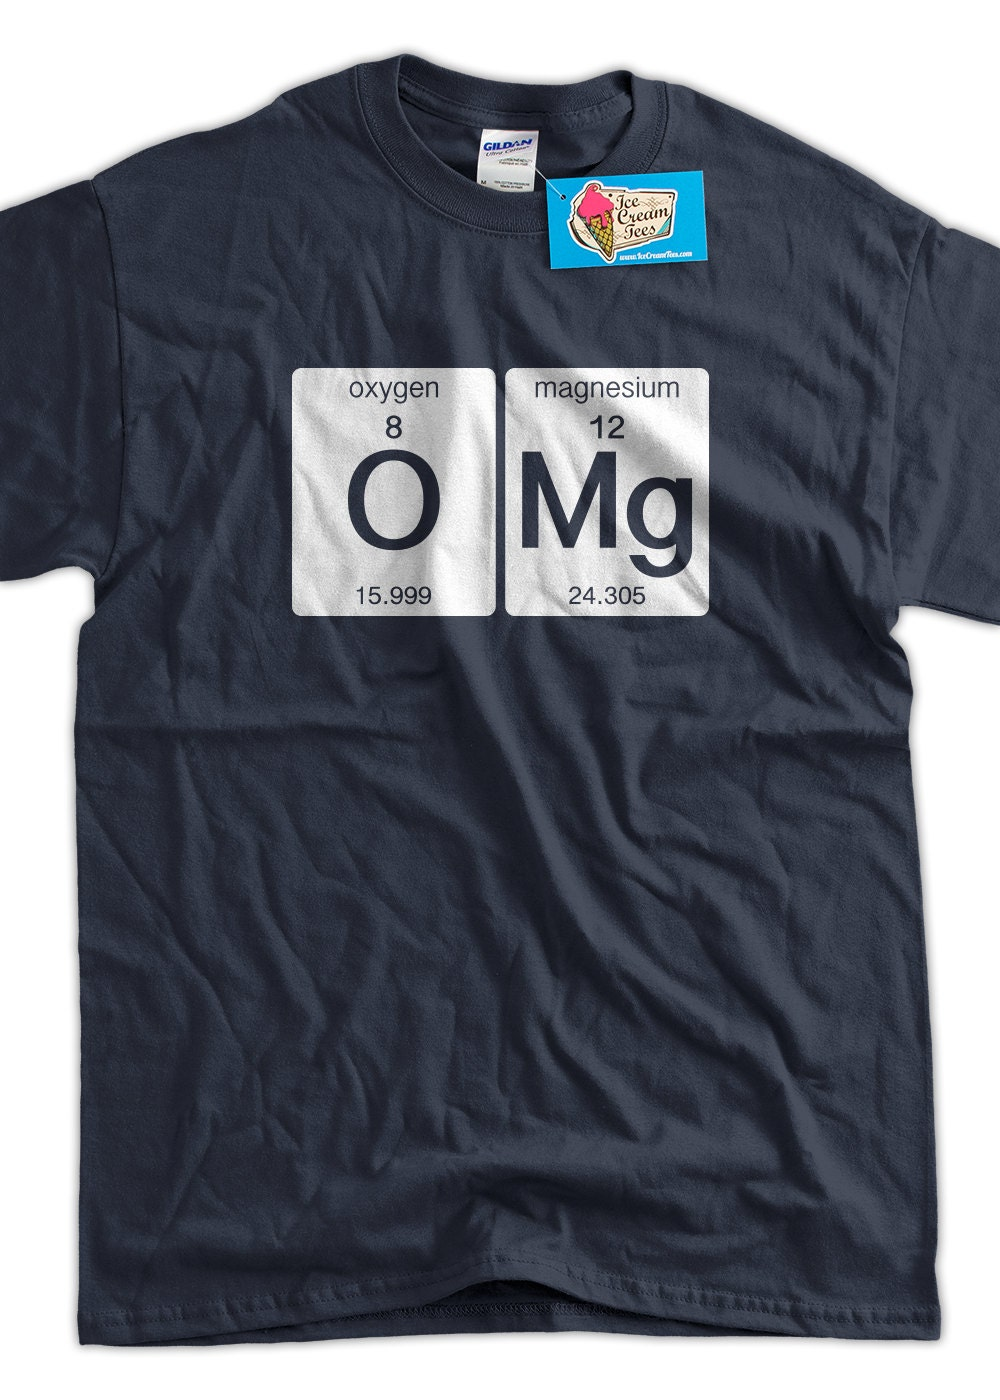 Funny Science T Shirt Omg T Shirt Oxygen Magnesium Funny Geek